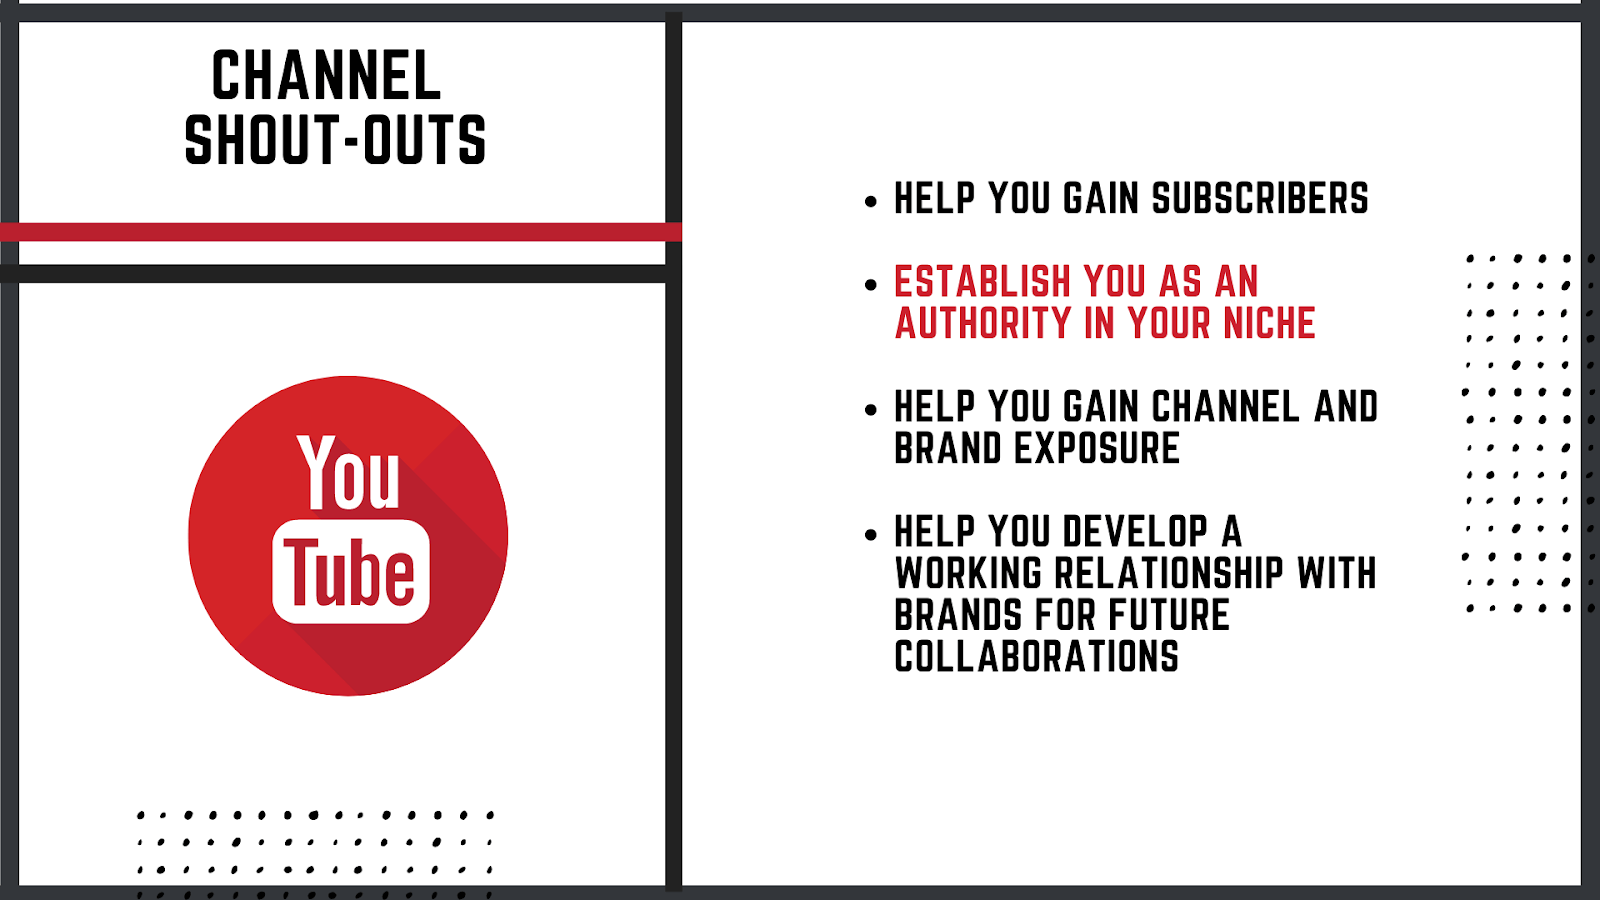 Asking for channel shout-outs on Youtube, why should you care about this?